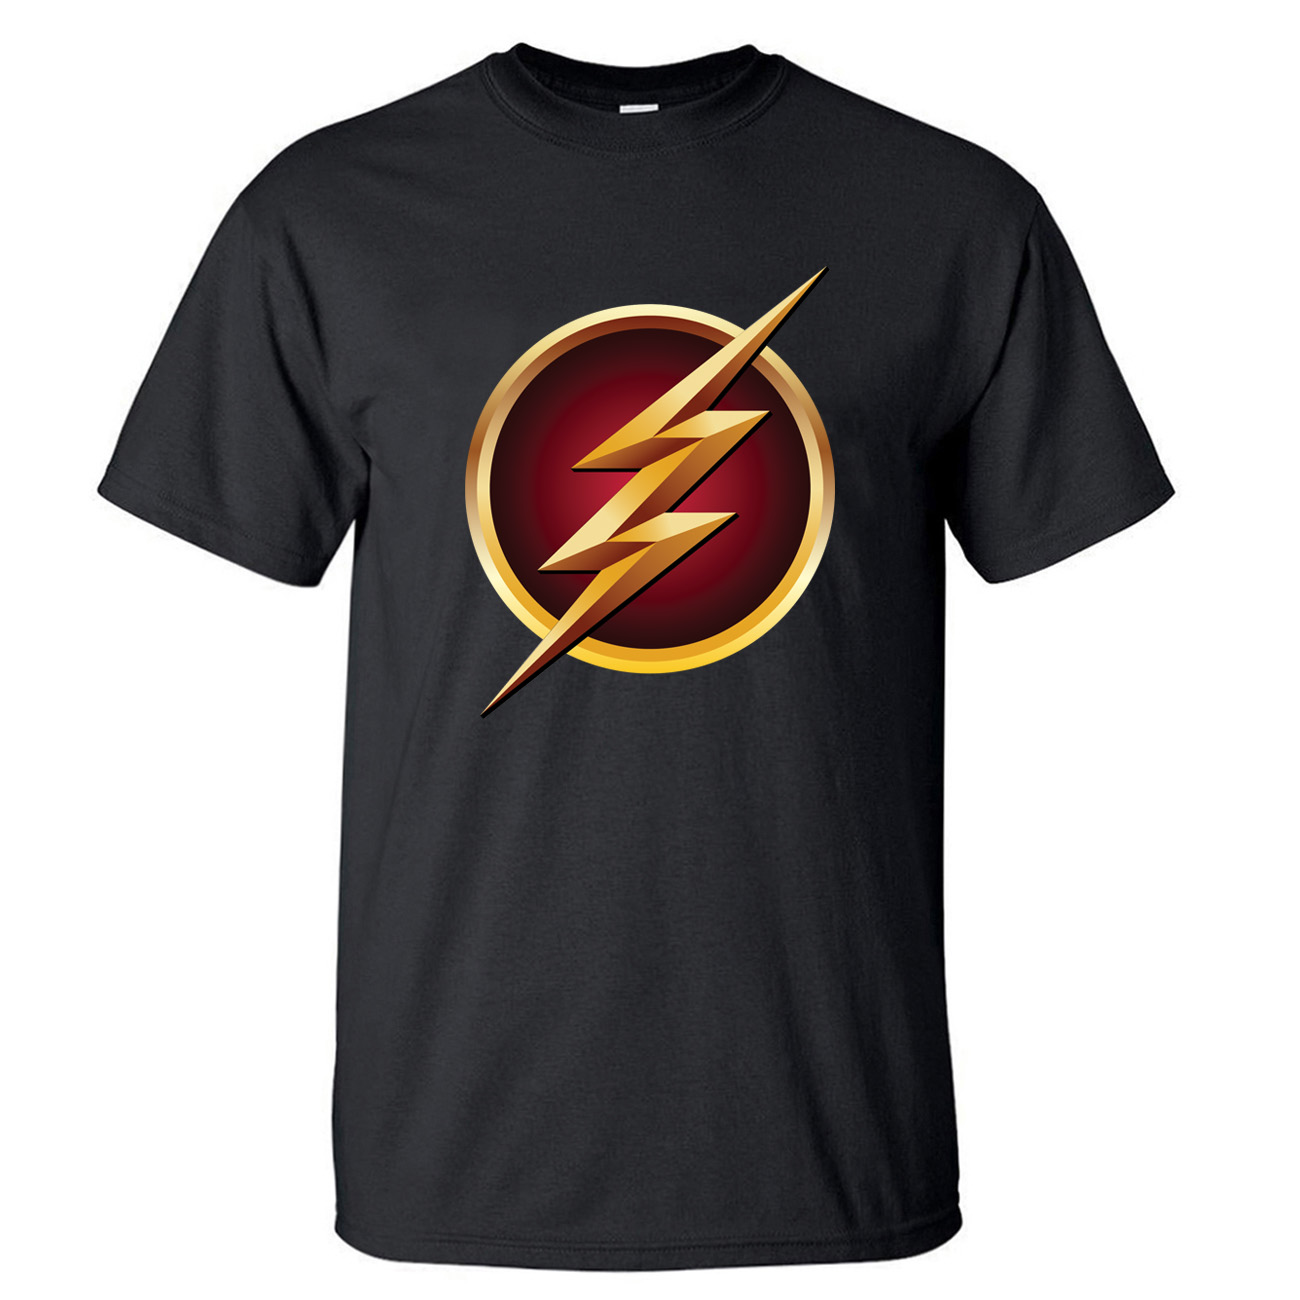 The Flash Superhero Tshirt Men Barry Allen S.T.A.R T Shirt Summer Tops Cotton Short Sleeve T-Shirt Mens Super Hero Black Tshirts